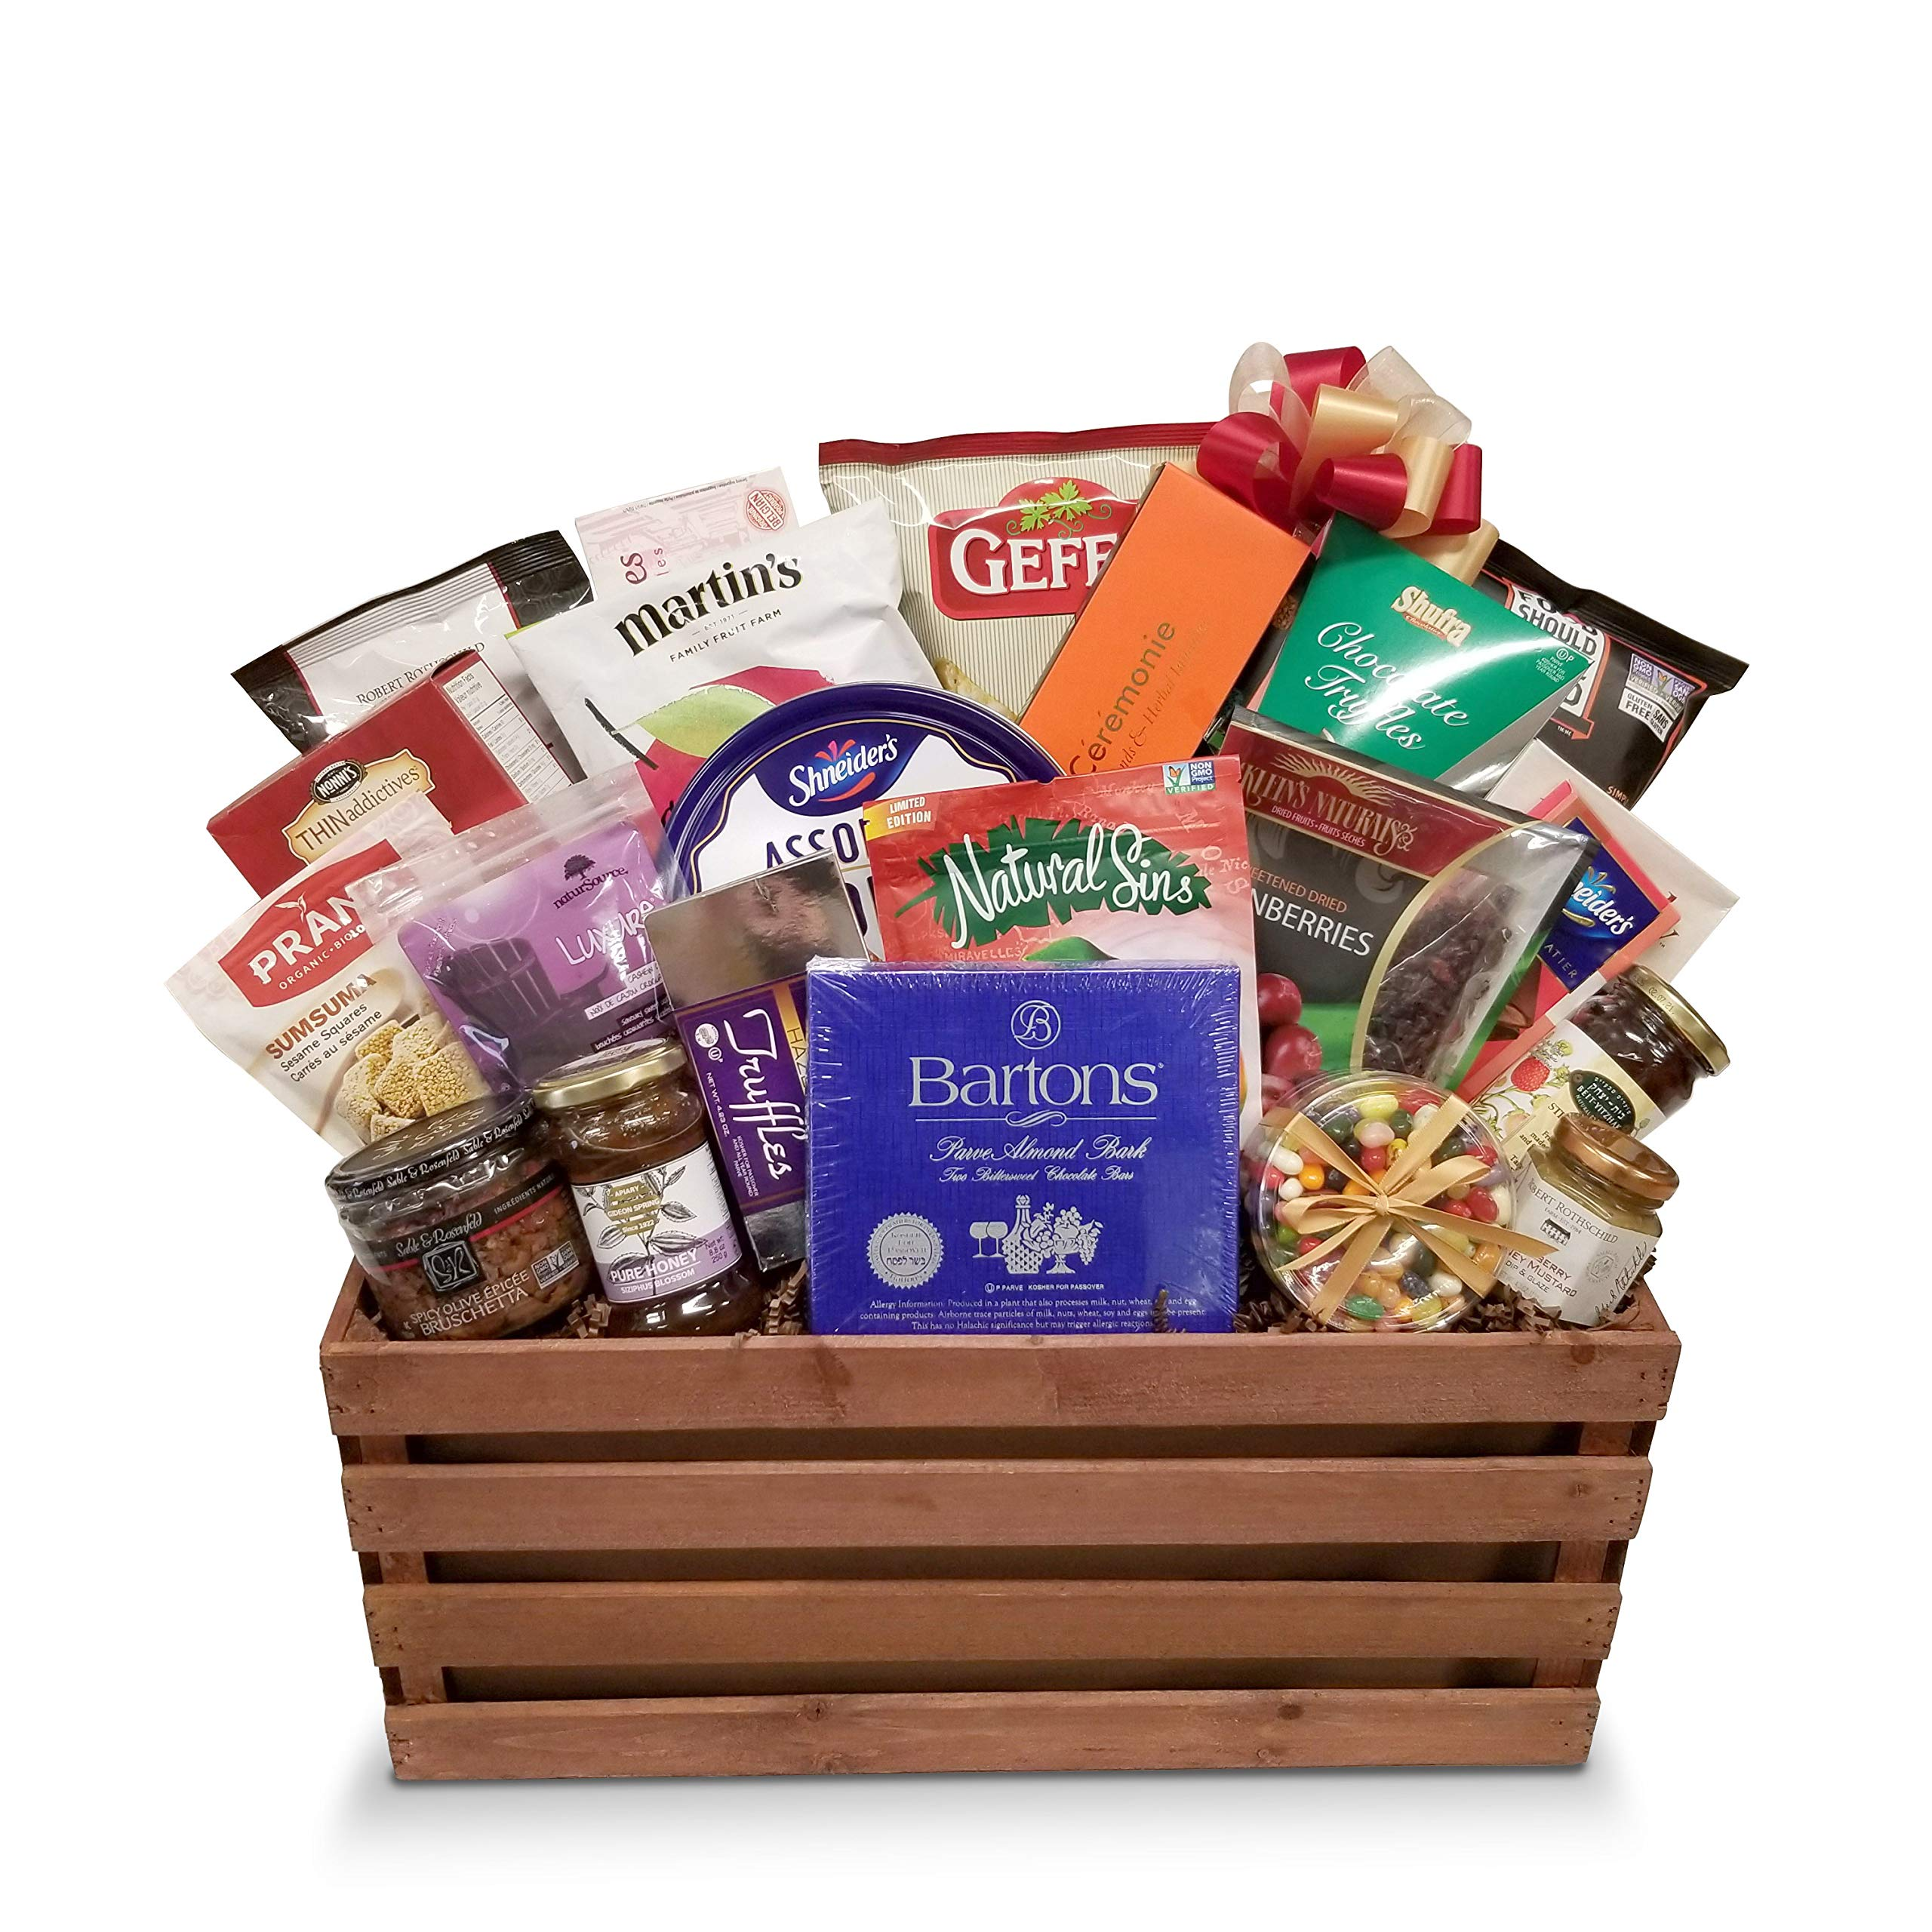 CDM product Kosher Rosh Hashana Holiday Gift Basket with Sweets, Apple Chips, Nuts, Honey Cookies, Chocolates and More big image